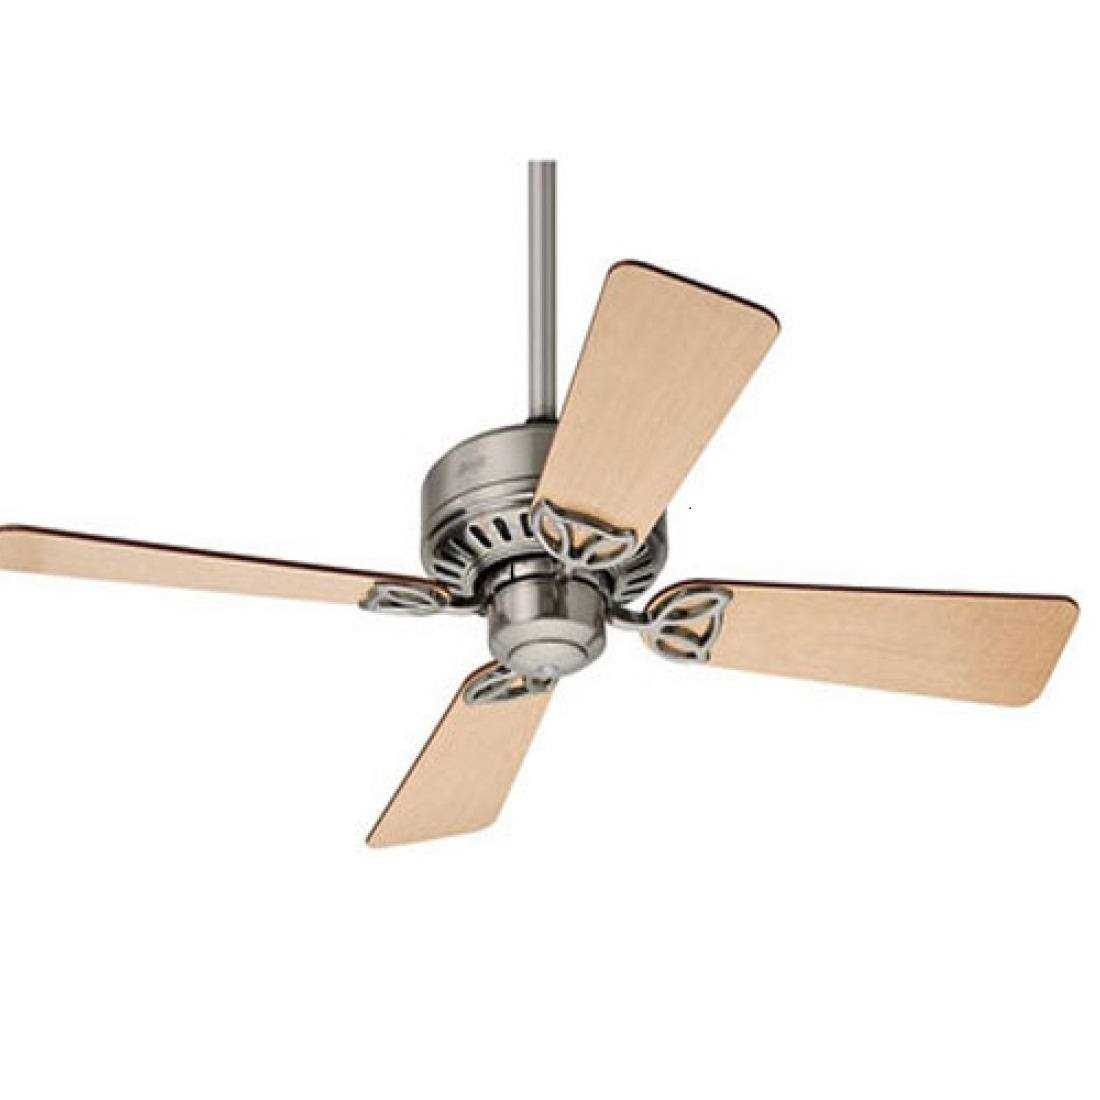 Usha Hunter Bayport Designer 4 Blade Ceiling Fan Price 27 Nov 2020 Hunter Bayport Designer Reviews And Specifications